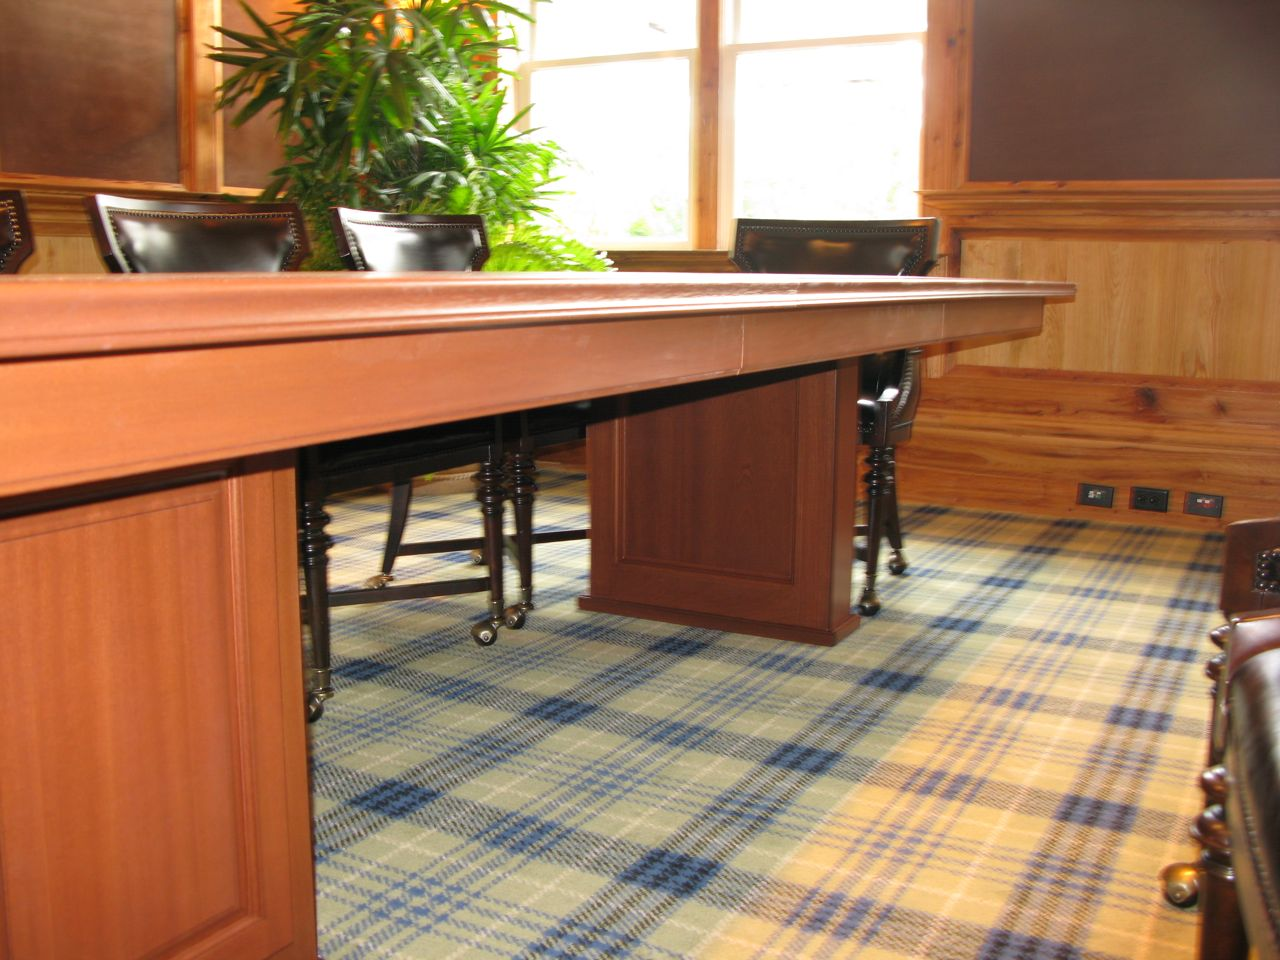 Expanding Conference Table - Expanding conference table